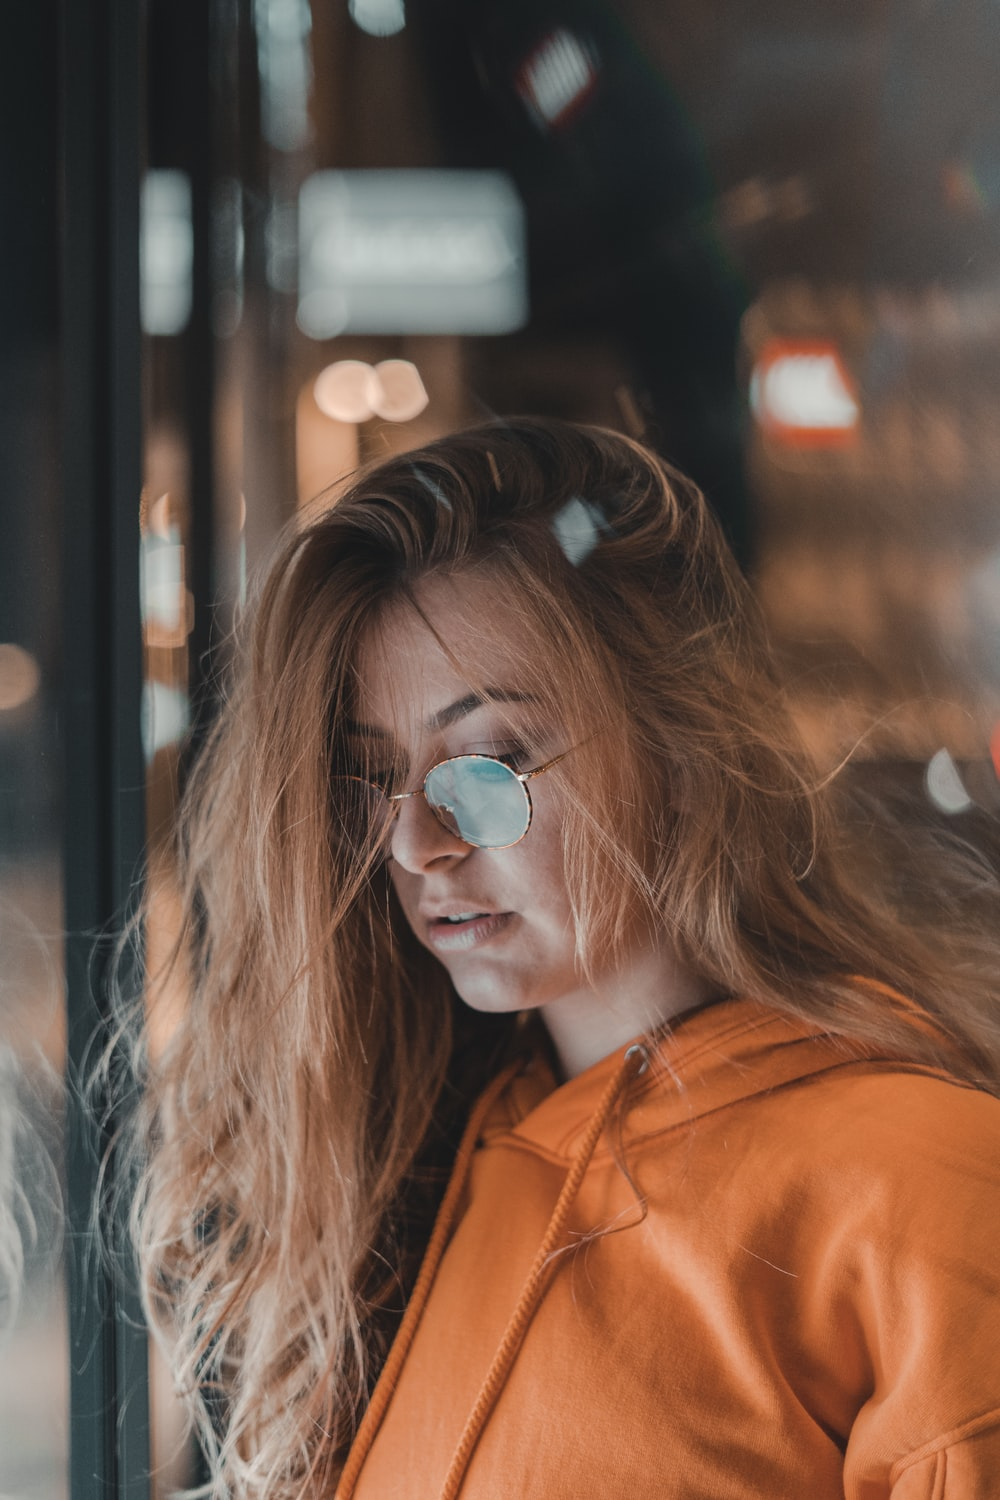 woman in orange pullover jacket and sunglasses